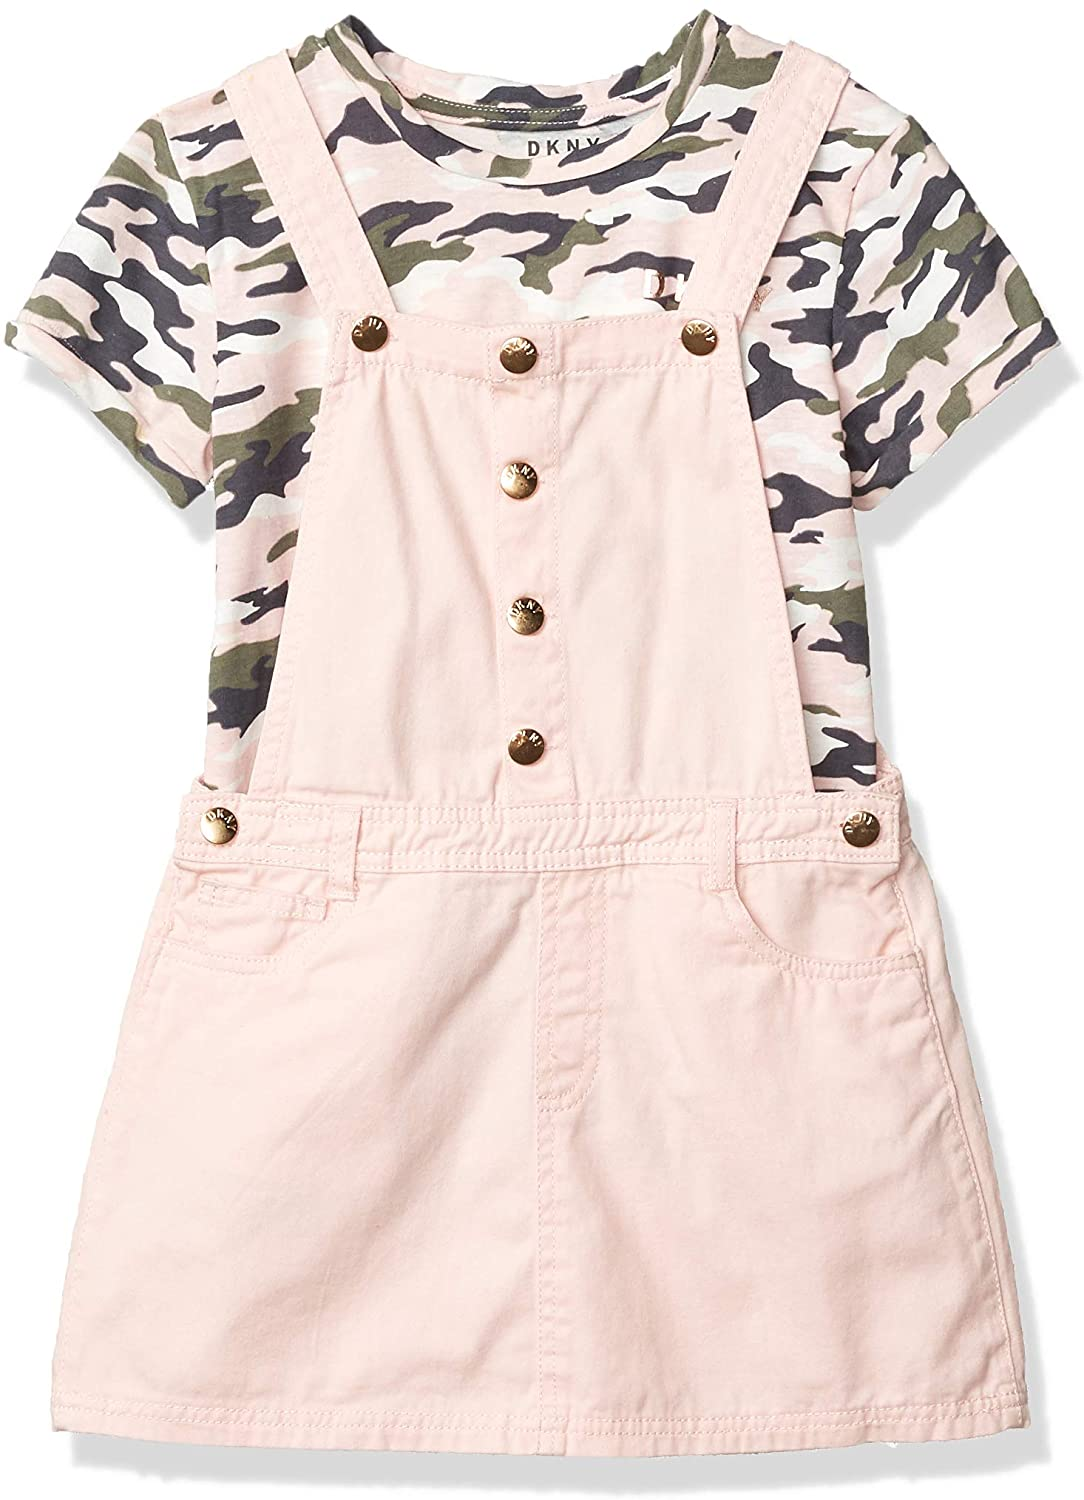 DKNY Girls' Skirt Set